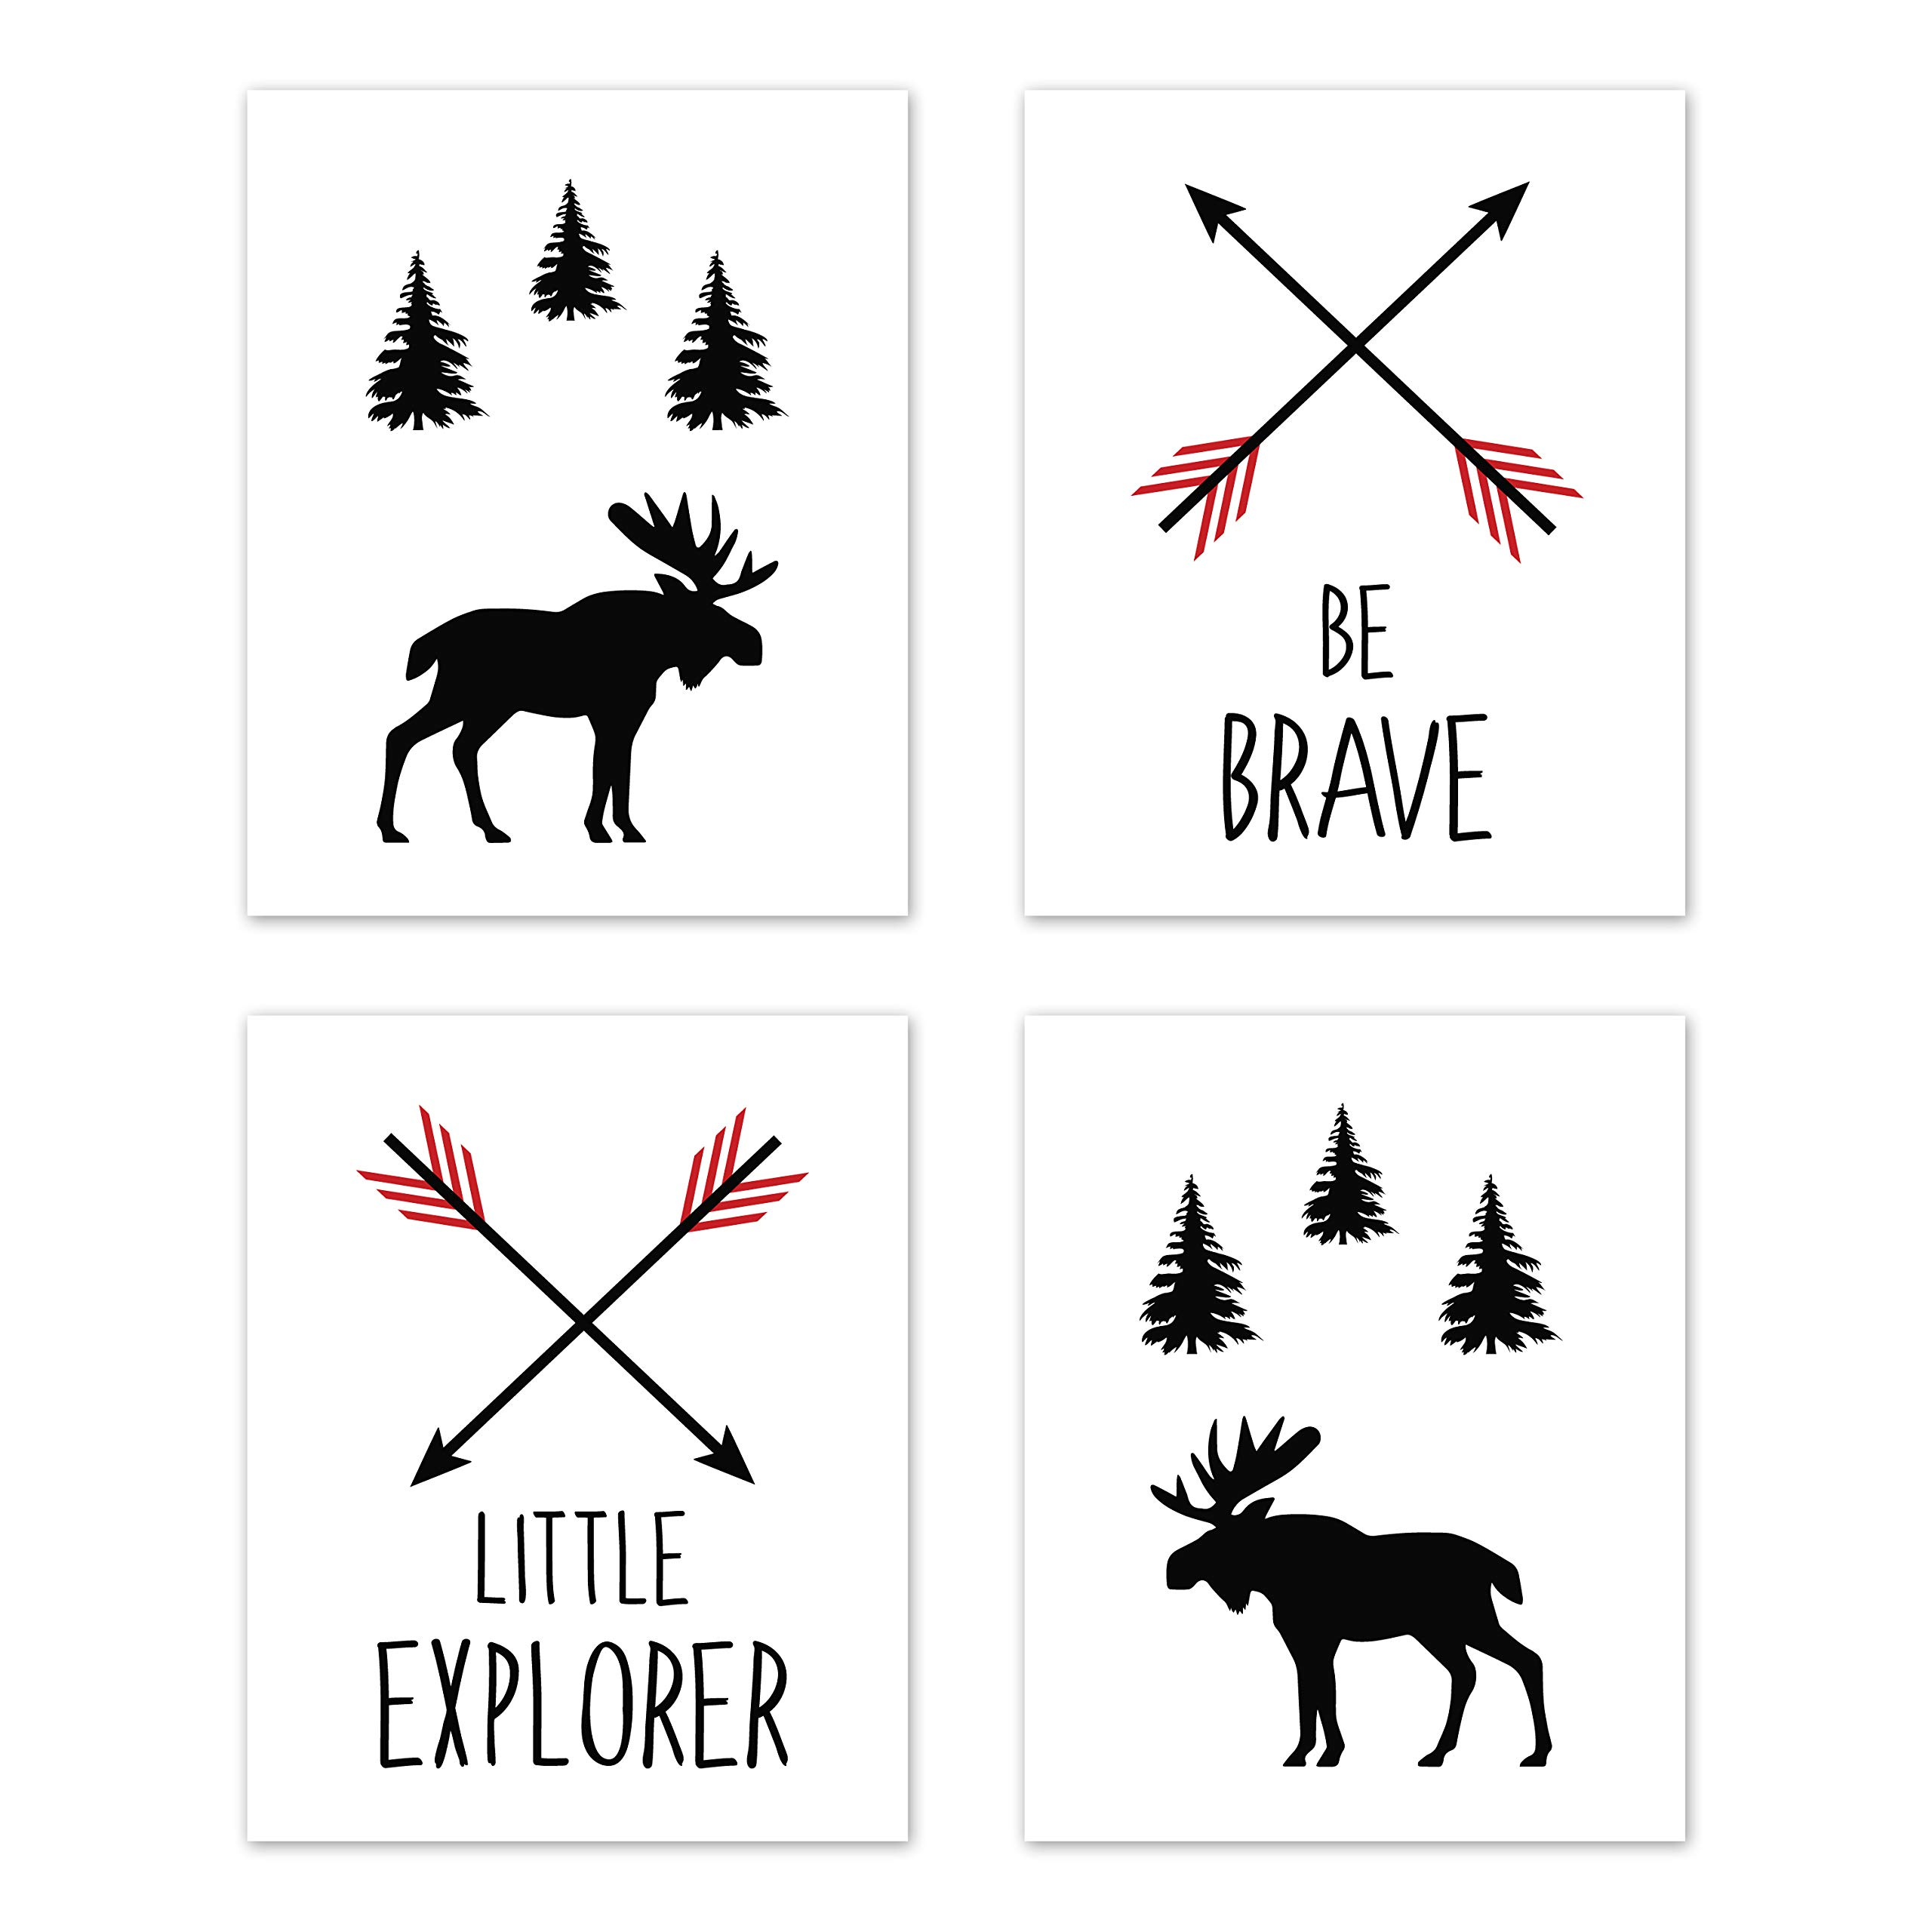 Sweet Jojo Designs Red and Black Woodland Arrow Moose Wall Art Prints Room Decor for Baby, Nursery, and Kids for Rustic Patch Collection - Set of 4 - Be Brave Little Explorer